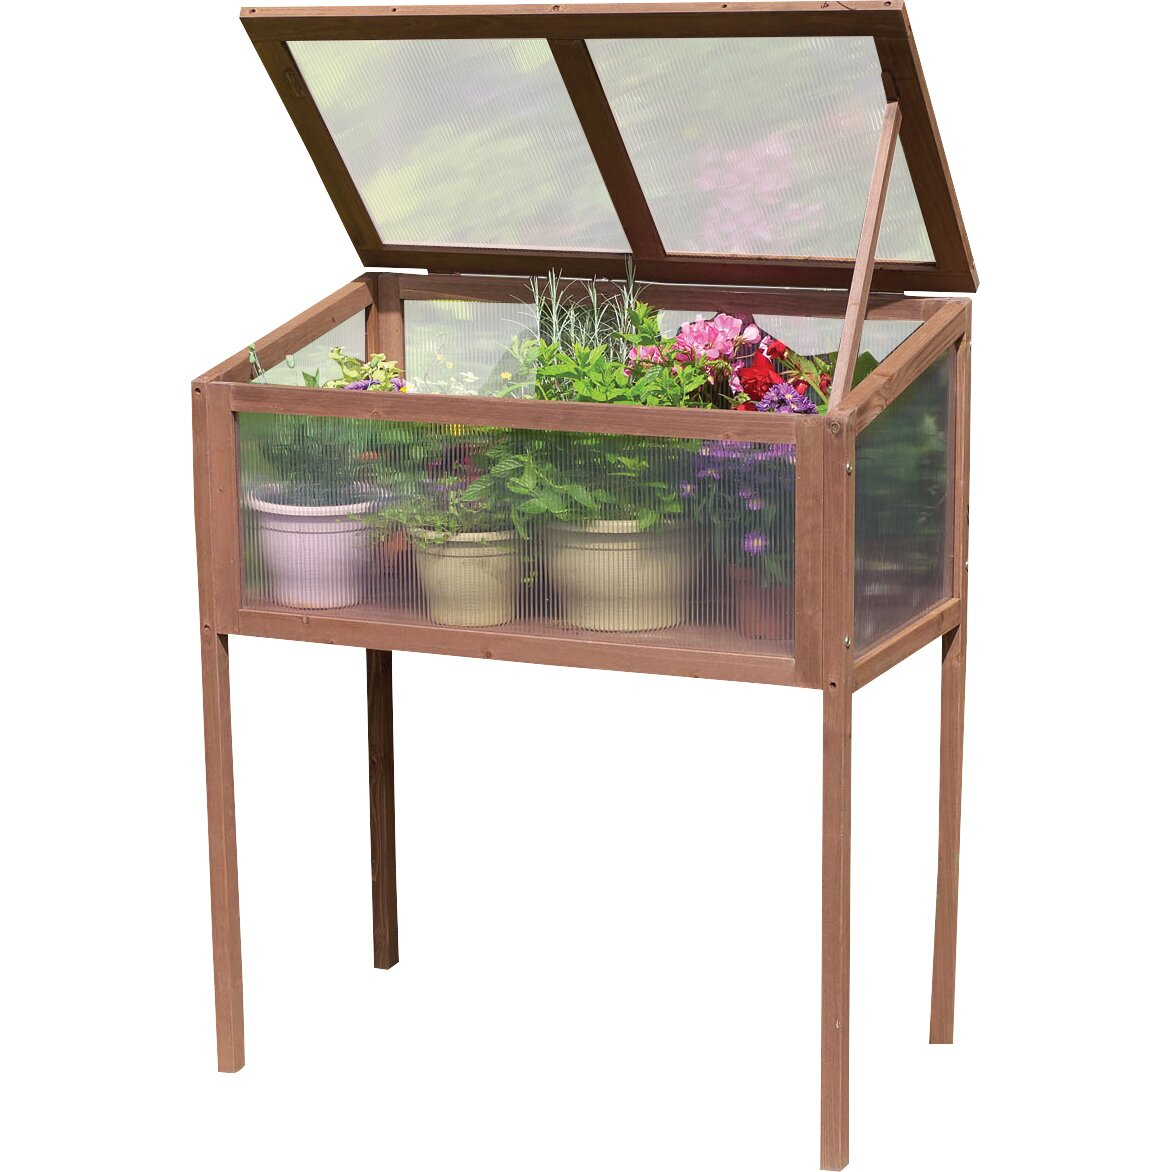 The Gardman 4 Tier Mini Greenhouse - gardensure.com